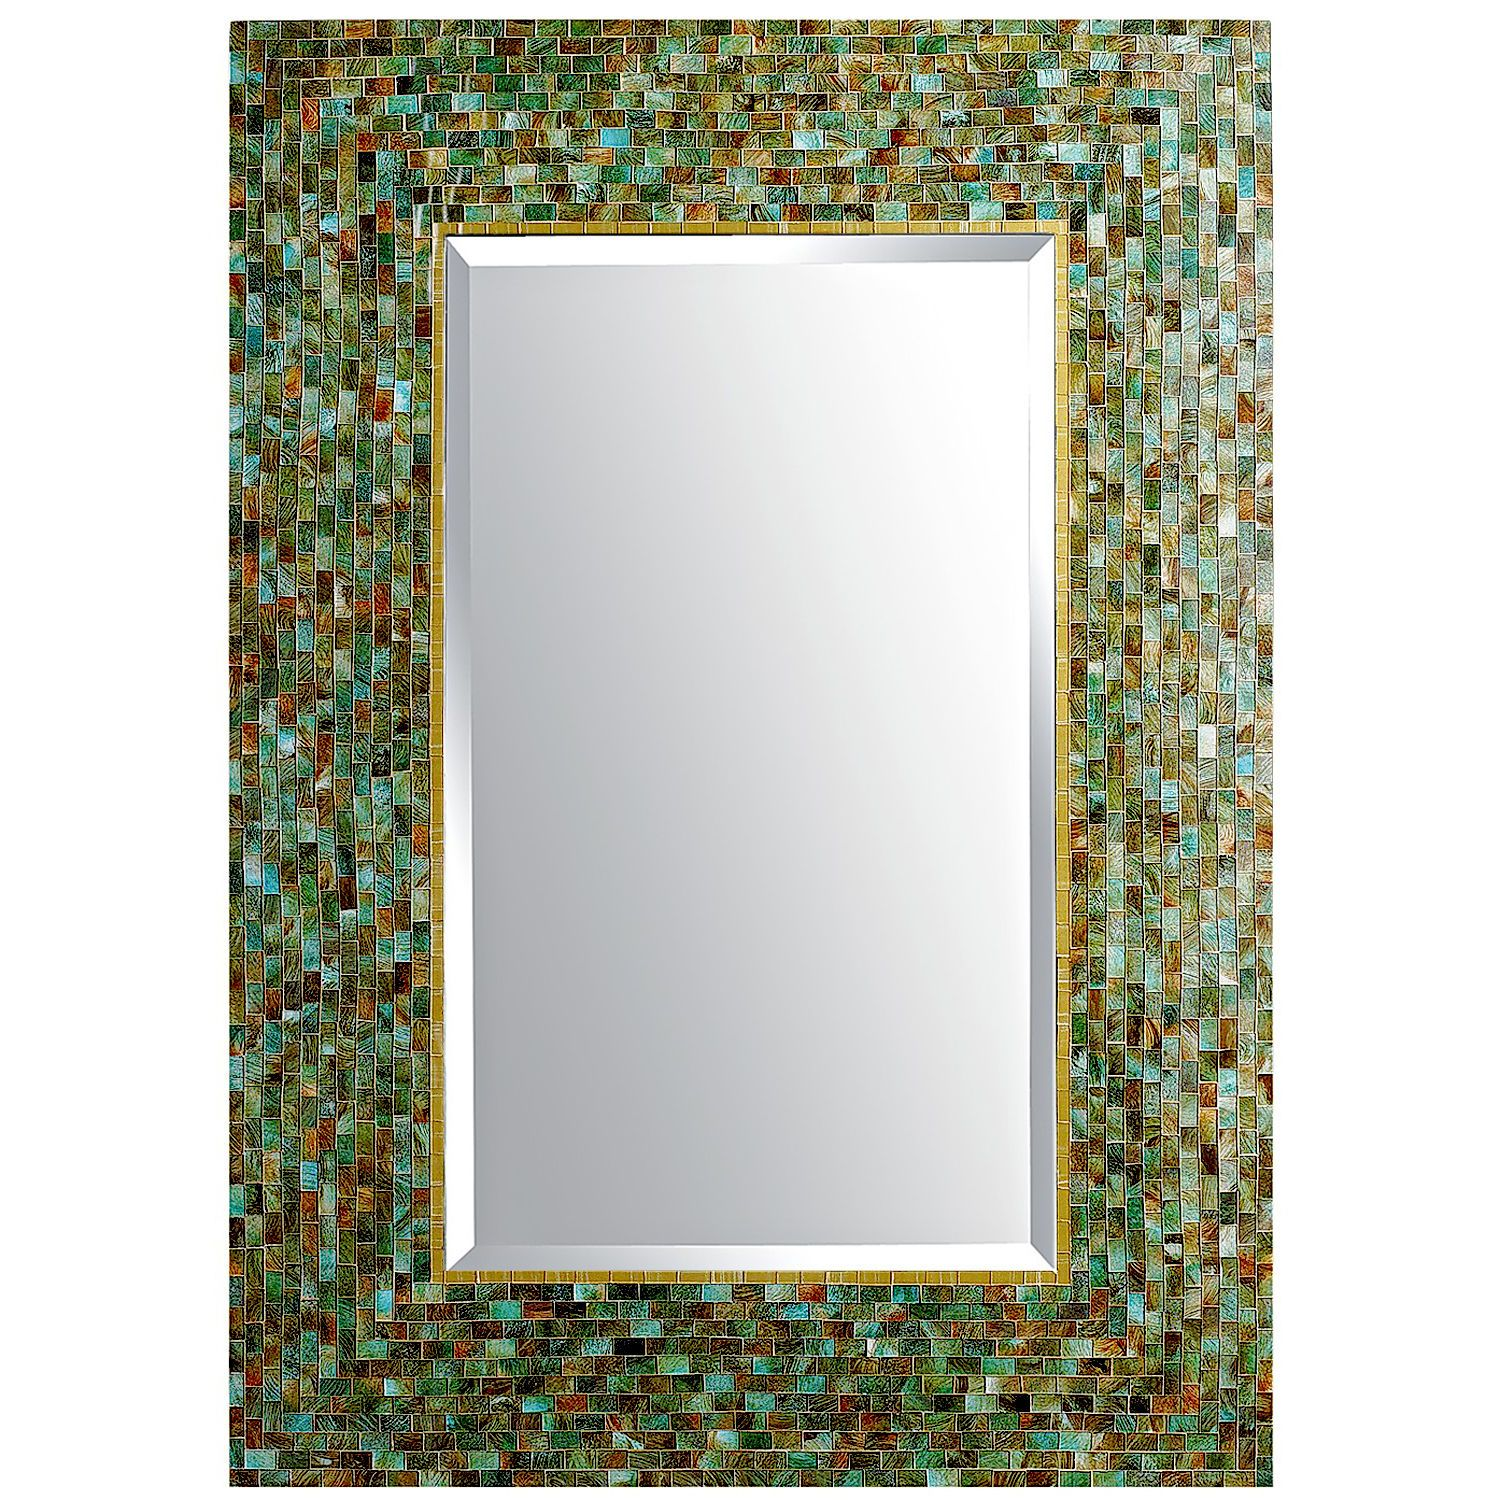 Charmful Pearl Ocean Mosaic Mirror Pier One Ocean Mosaic Mirror Pier One New Room Pinterest Mosaic Pier One Mirror Furniture Pier One Mirrors Mor houzz-03 Pier One Mirrors